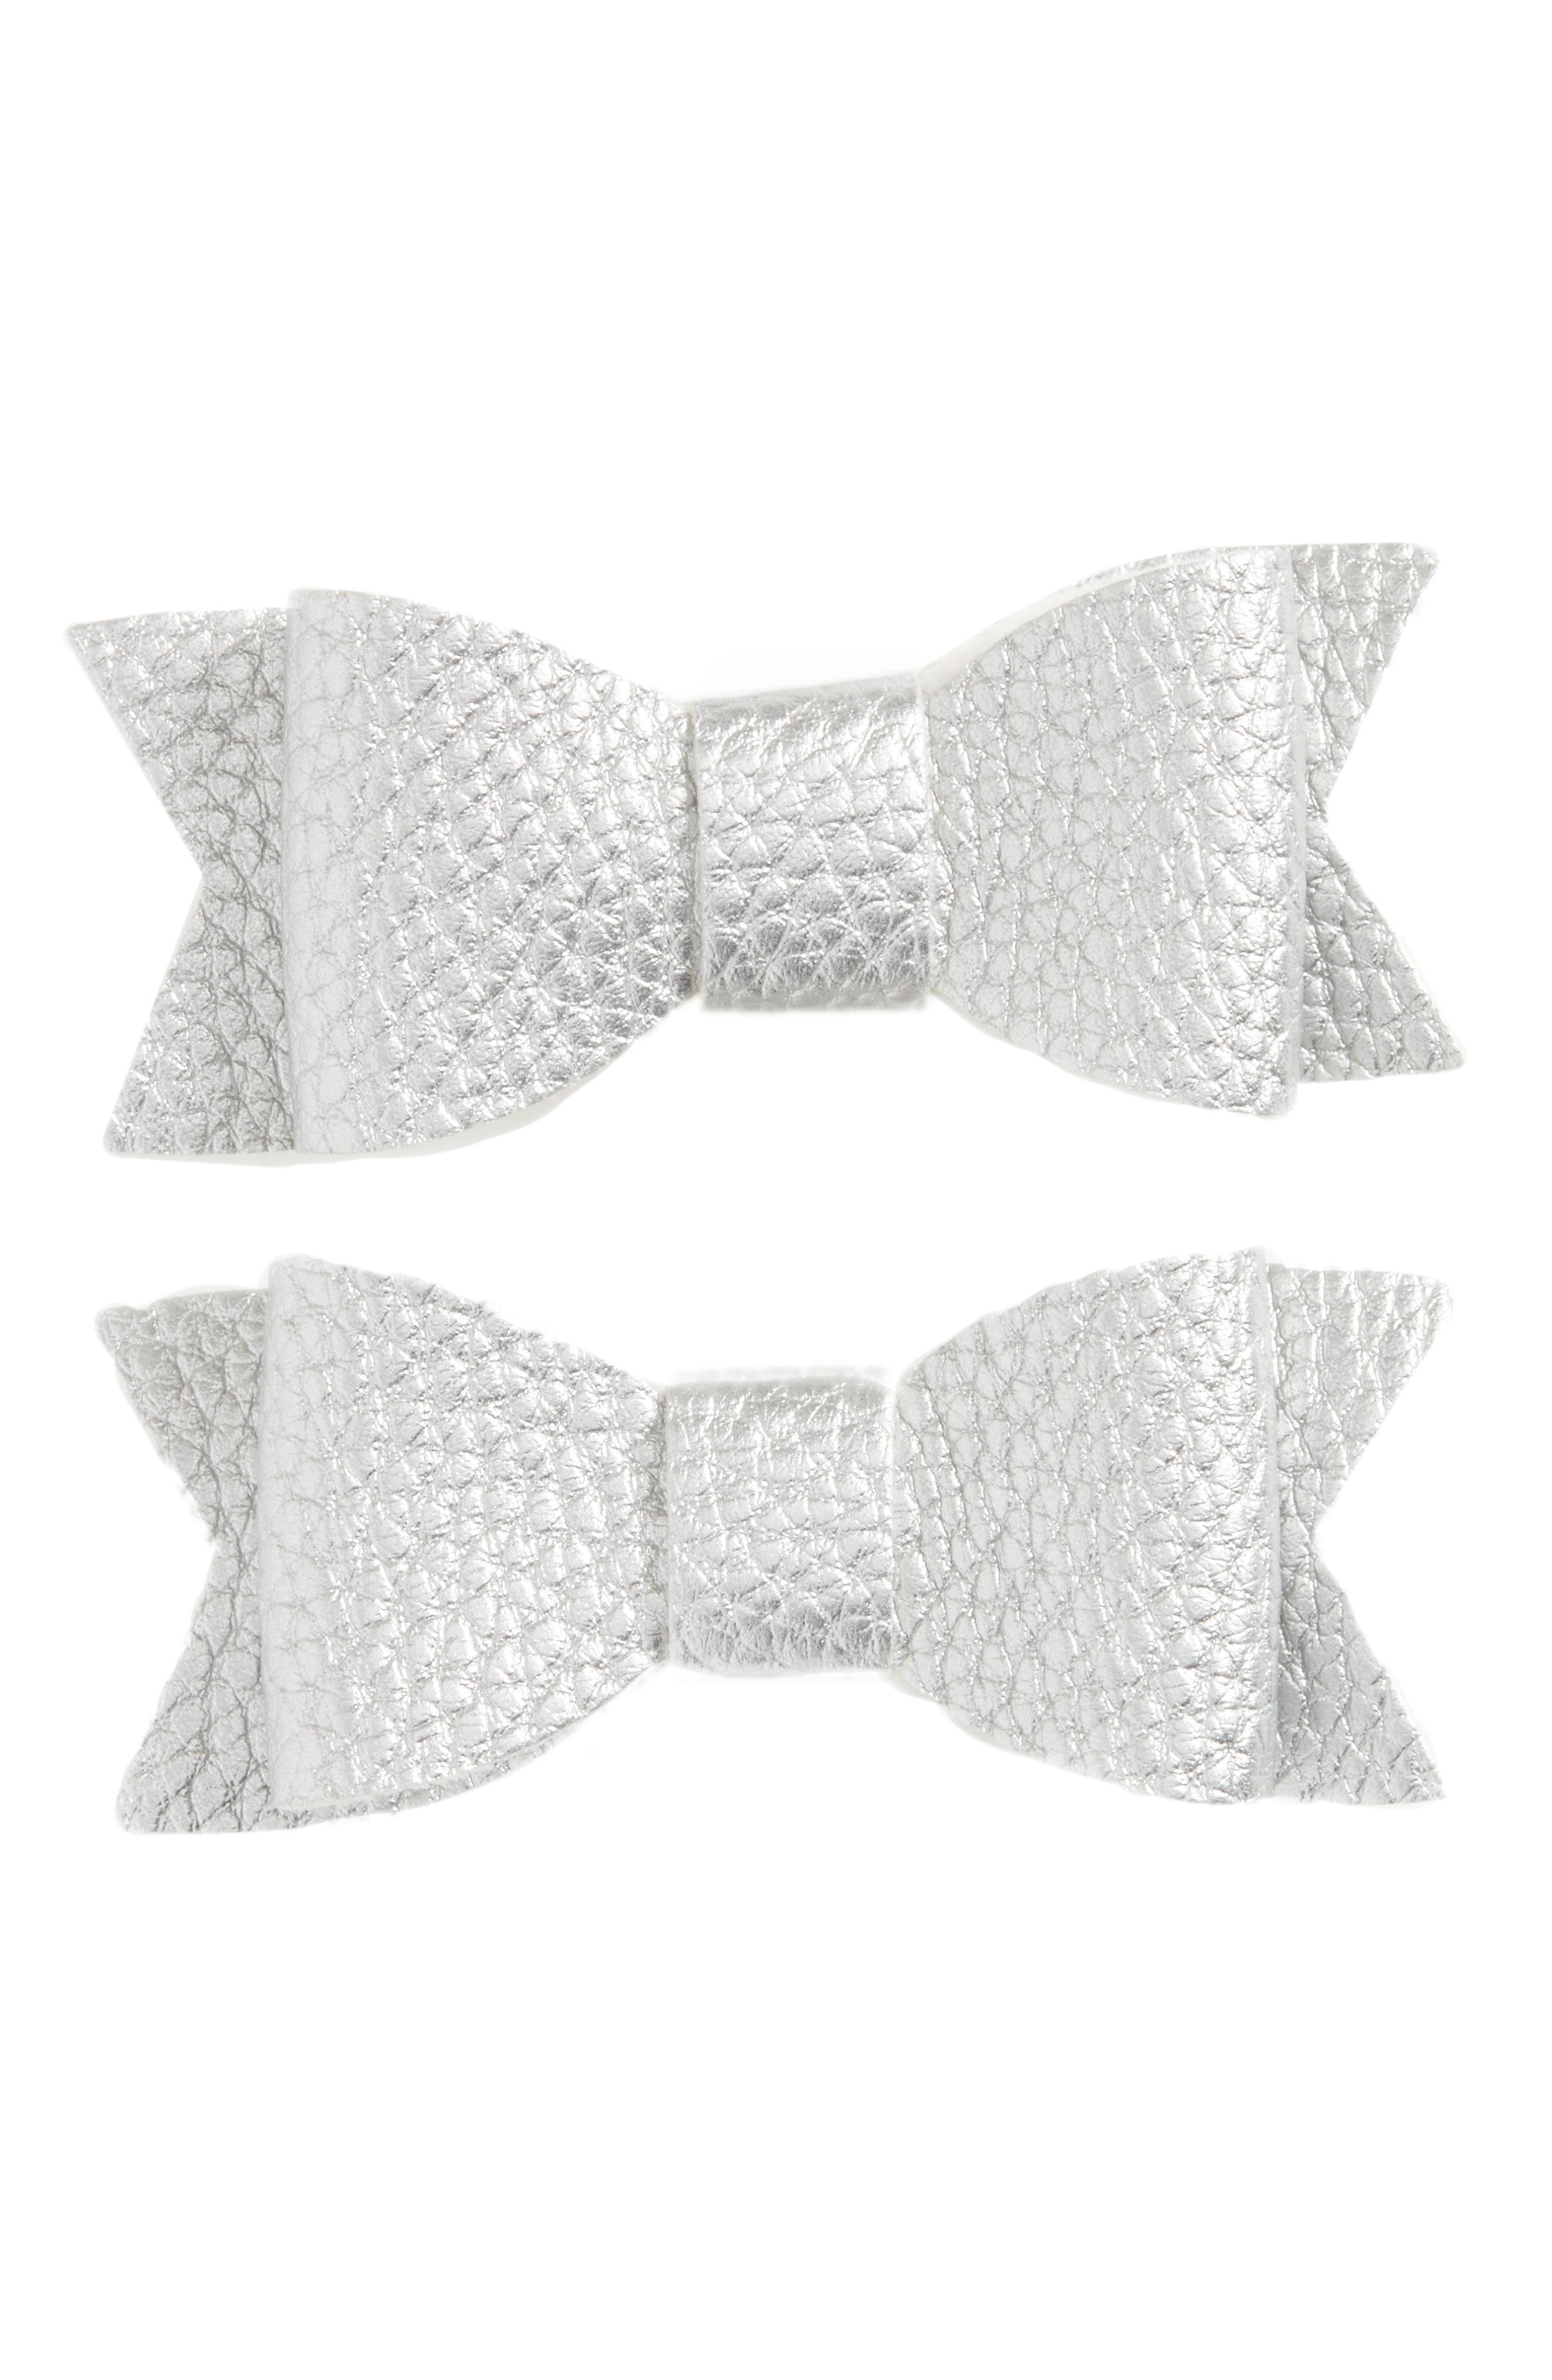 Main Image - Baby Bling 2-Pack Bow Clips (Baby Girls)